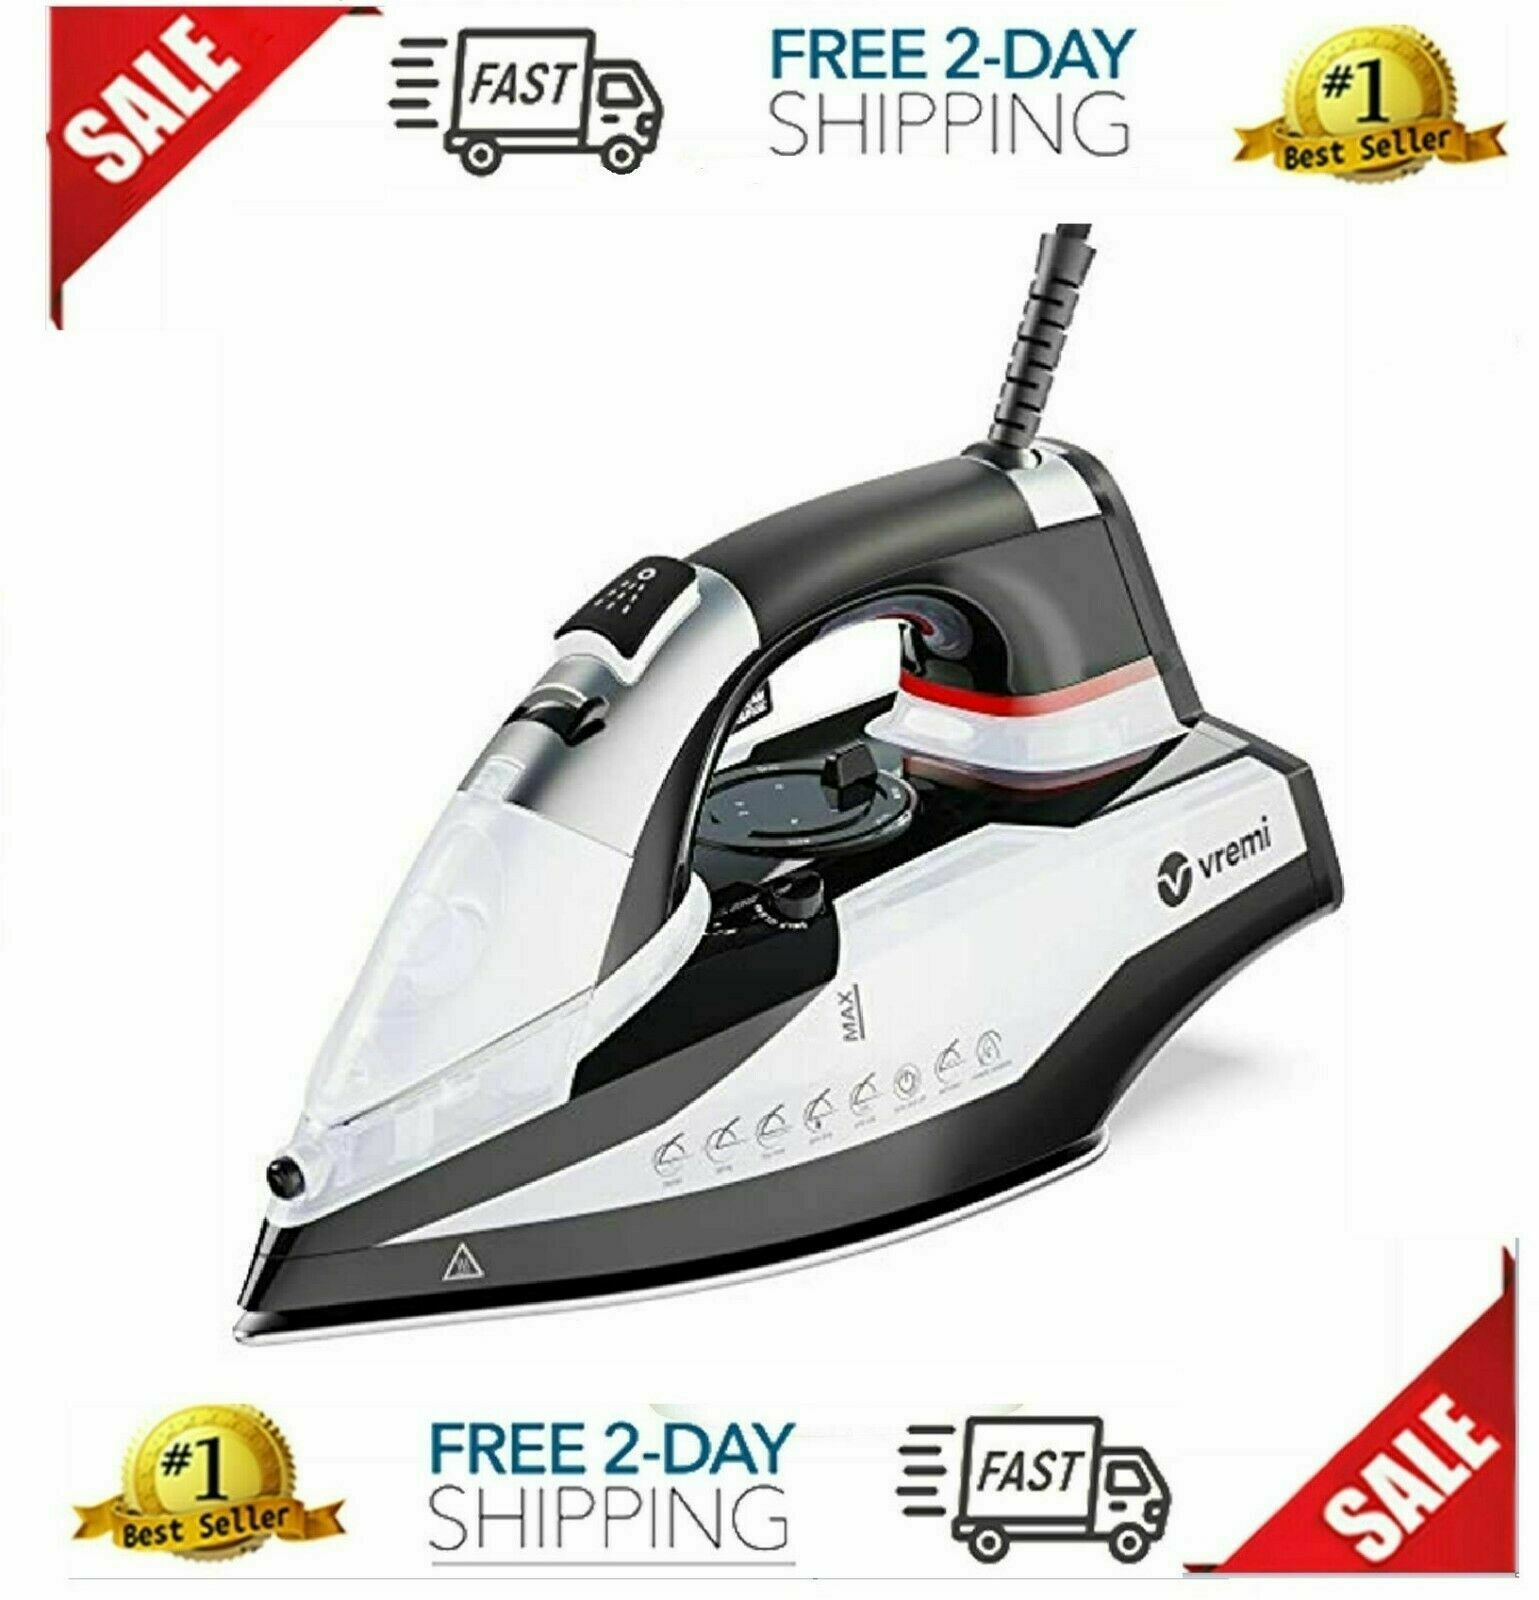 1800 Watt Steam Iron For Clothes - Nonstick Ceramic Sole Plate, 350 ML Water Way - $43.29